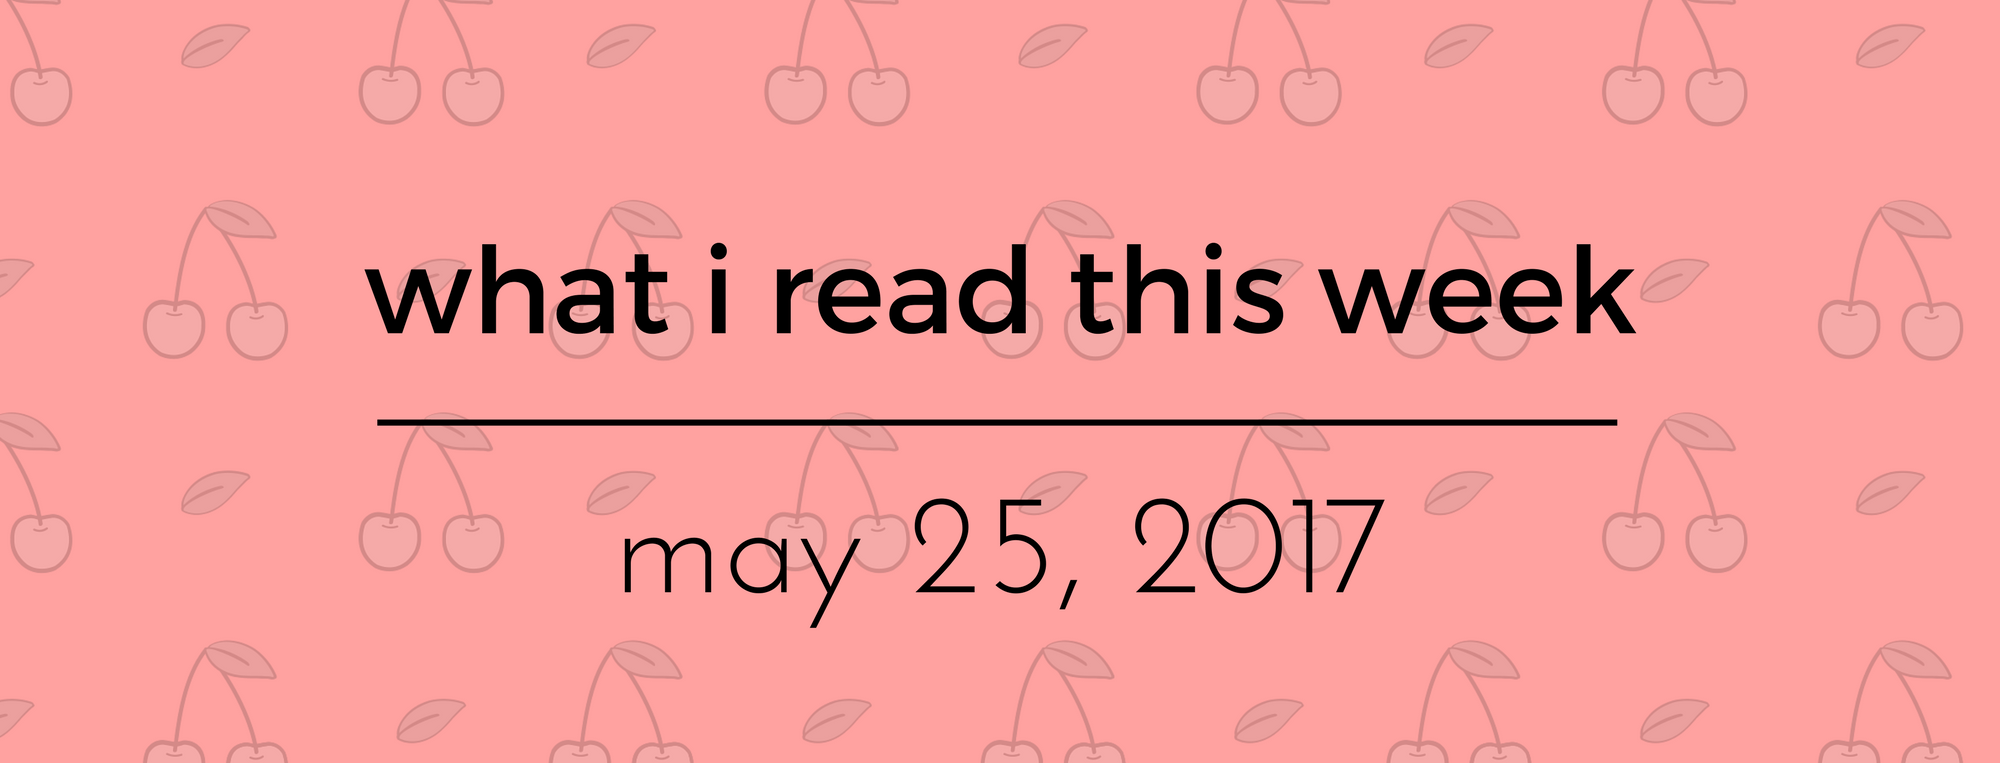 WIRTW Weekly Roundup – May 25, 2017!